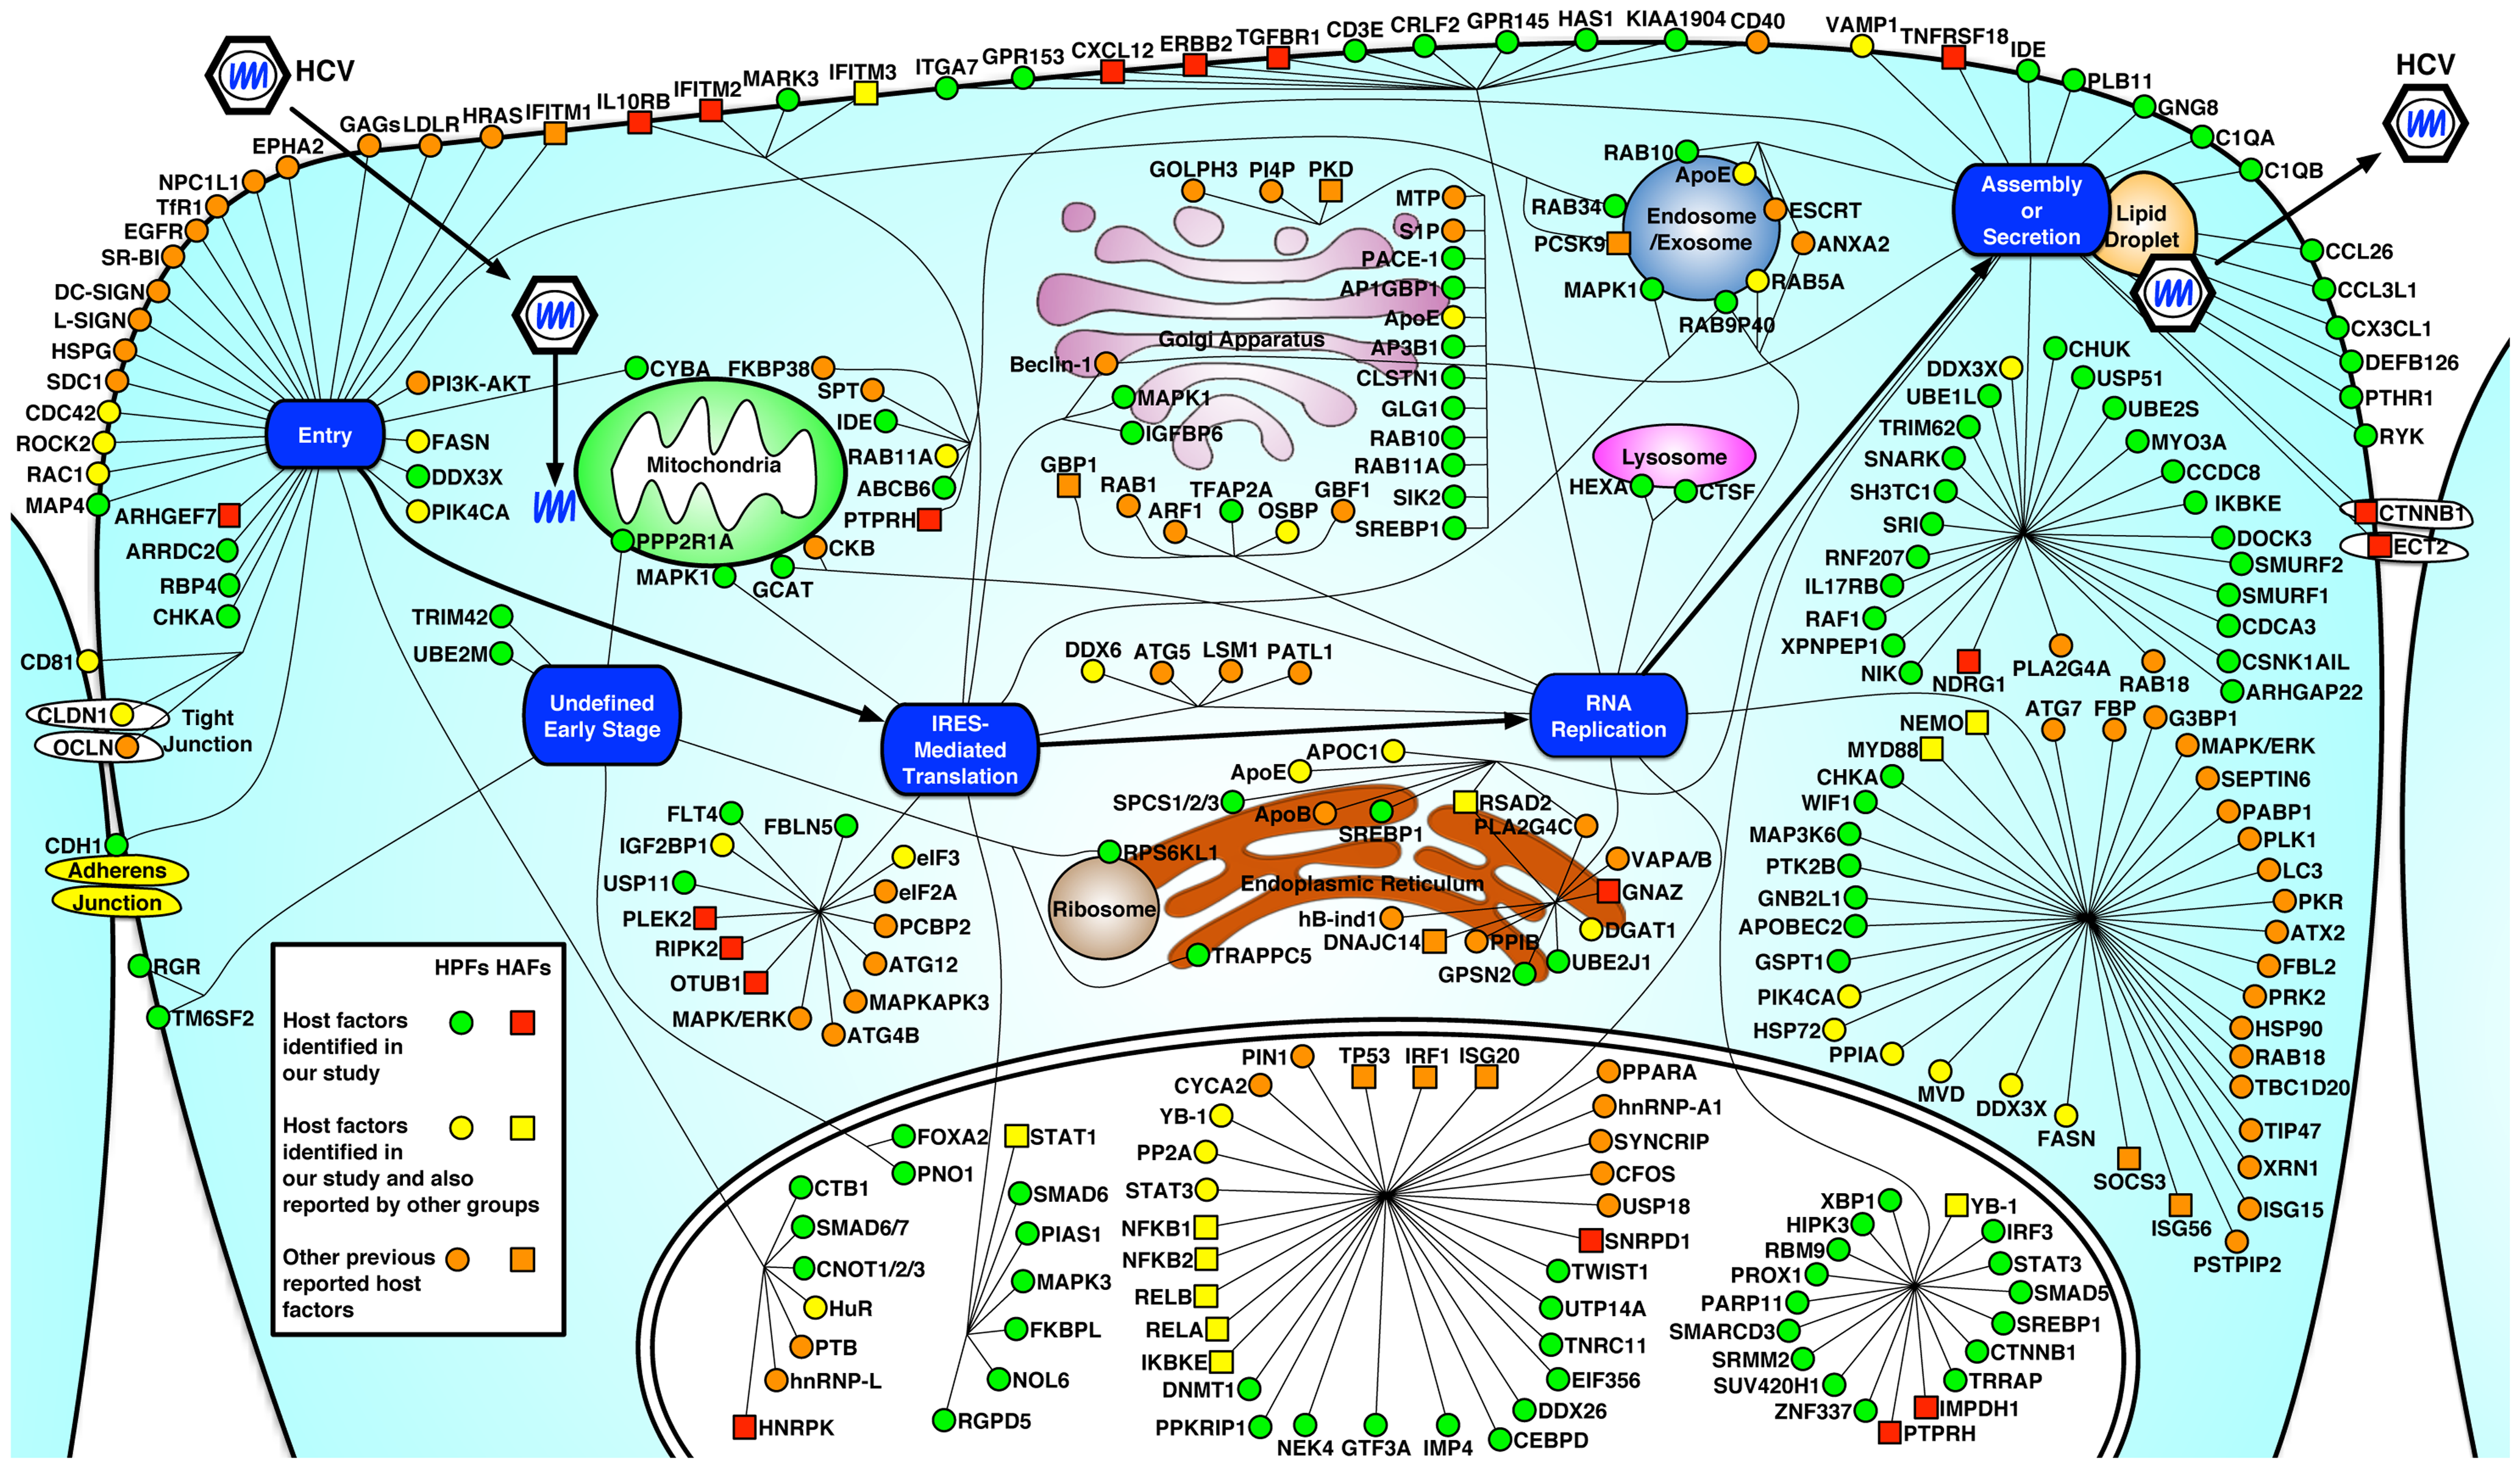 Integrated map of host dependencies in the complete replication cycle of HCV.